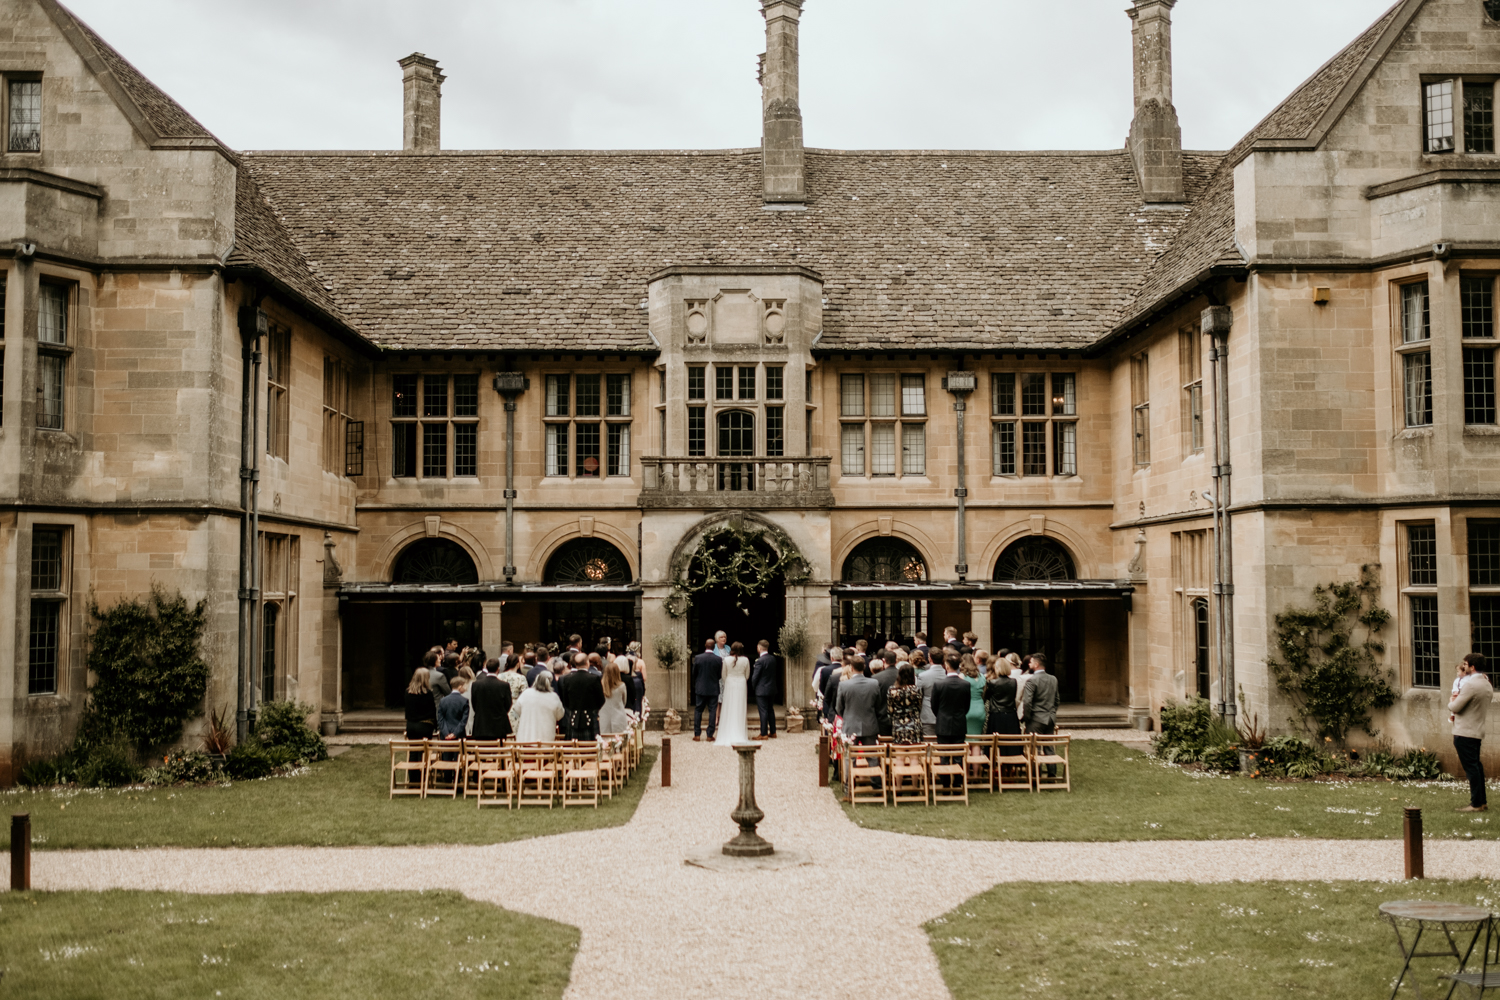 outdoor wedding ceremony in the gardens of Coombe Lodge Blagdon wedding venue